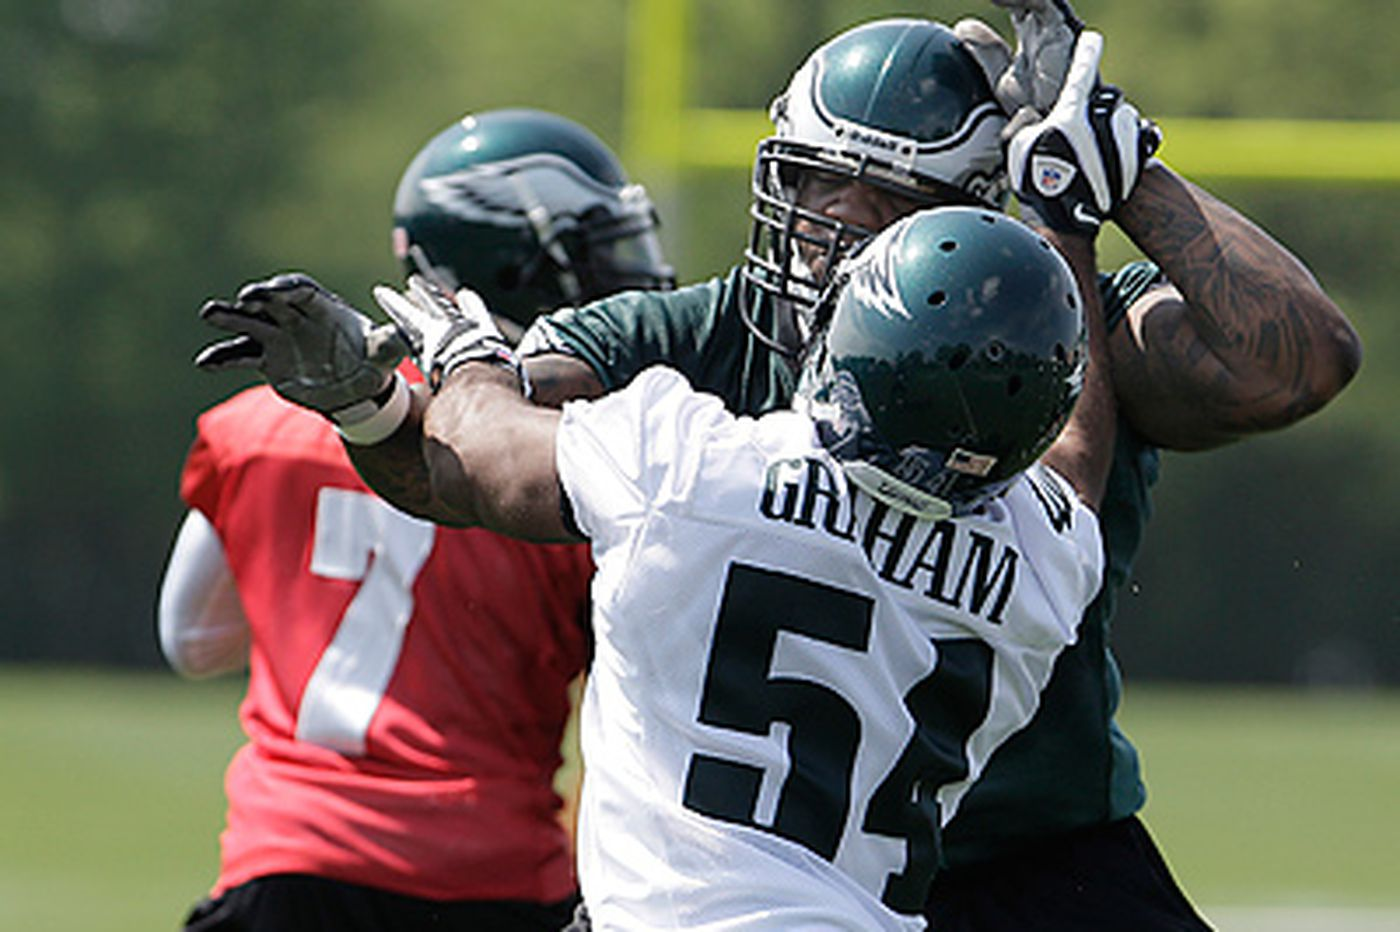 Eagles lineman Dunlap trying to get more King-sized